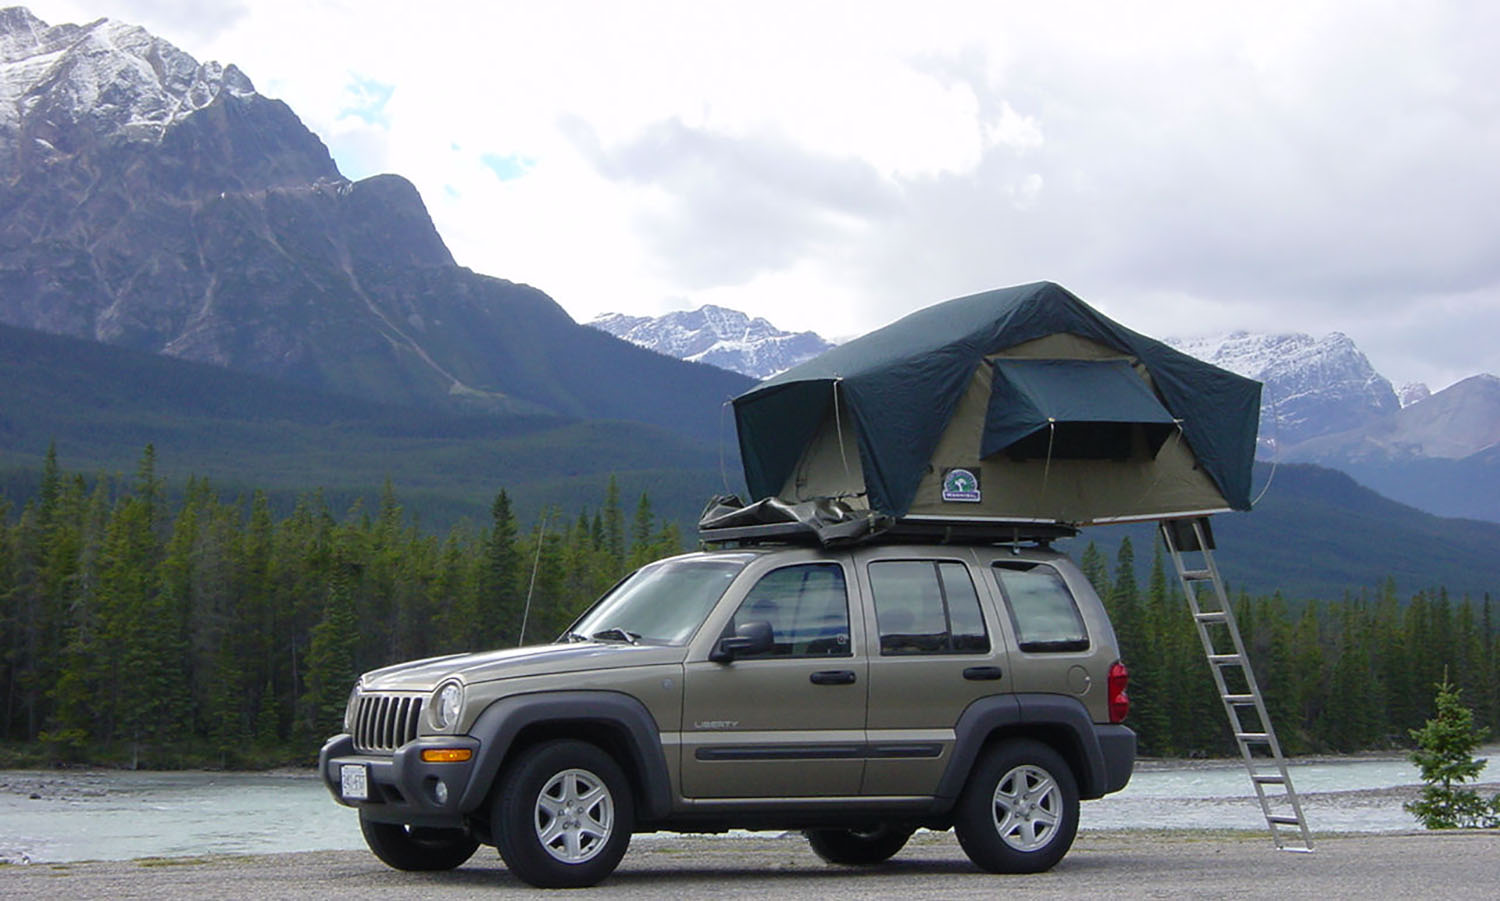 Jeep with Hannibal Safari Rooftop Tent & Hannibal Classic Canvas Tent - Hannibal Safari Equipment